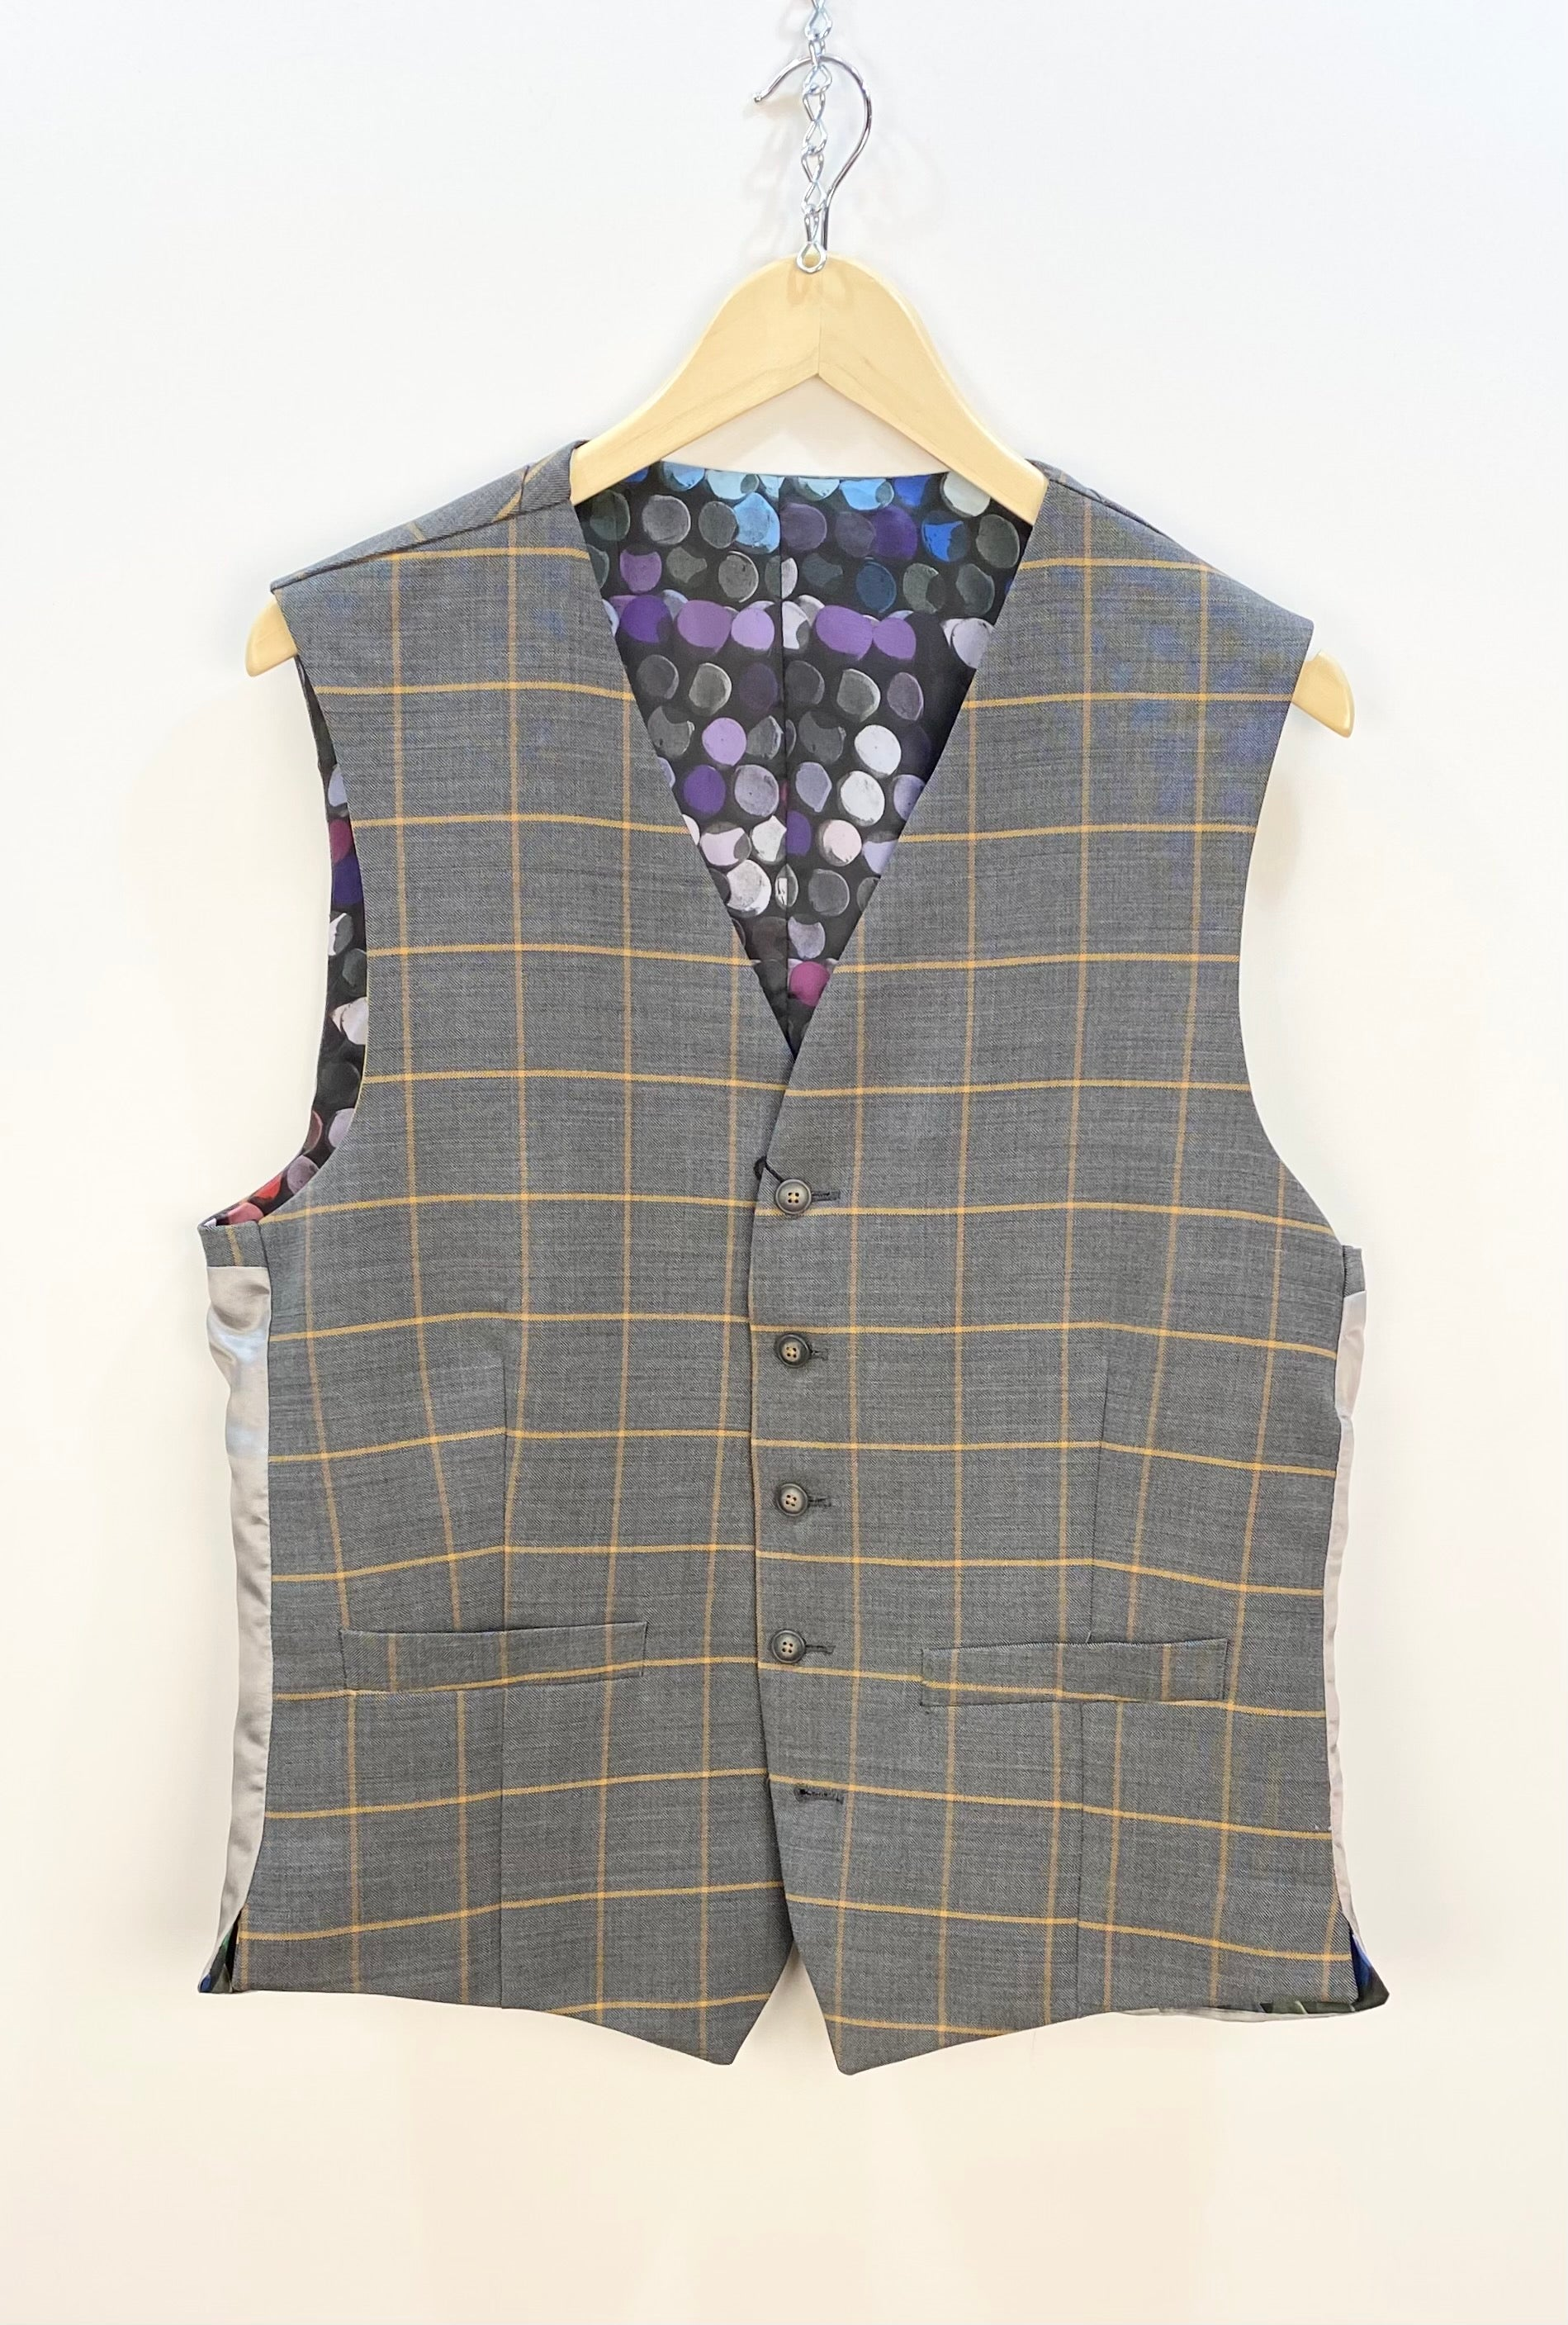 Gibson London 'MARRIOT' Check Waistcoat Grey / Tan